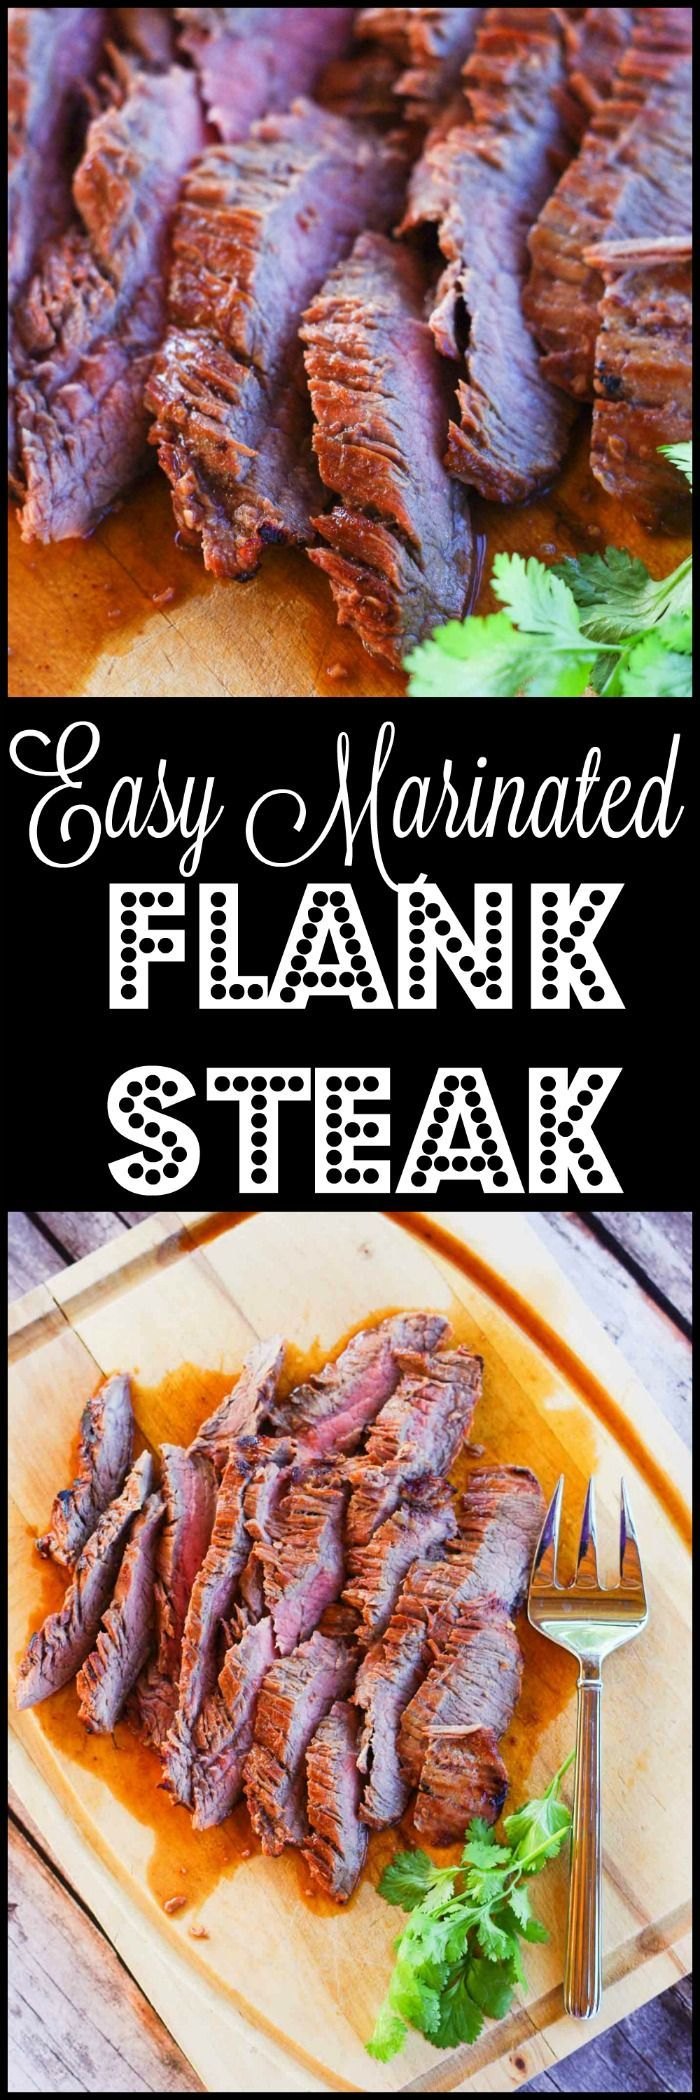 Easy Marinated Flank Steak | http://www.homeandplate.com | My marinated flank steak is tender, full of flavor and just melts in your mouth.